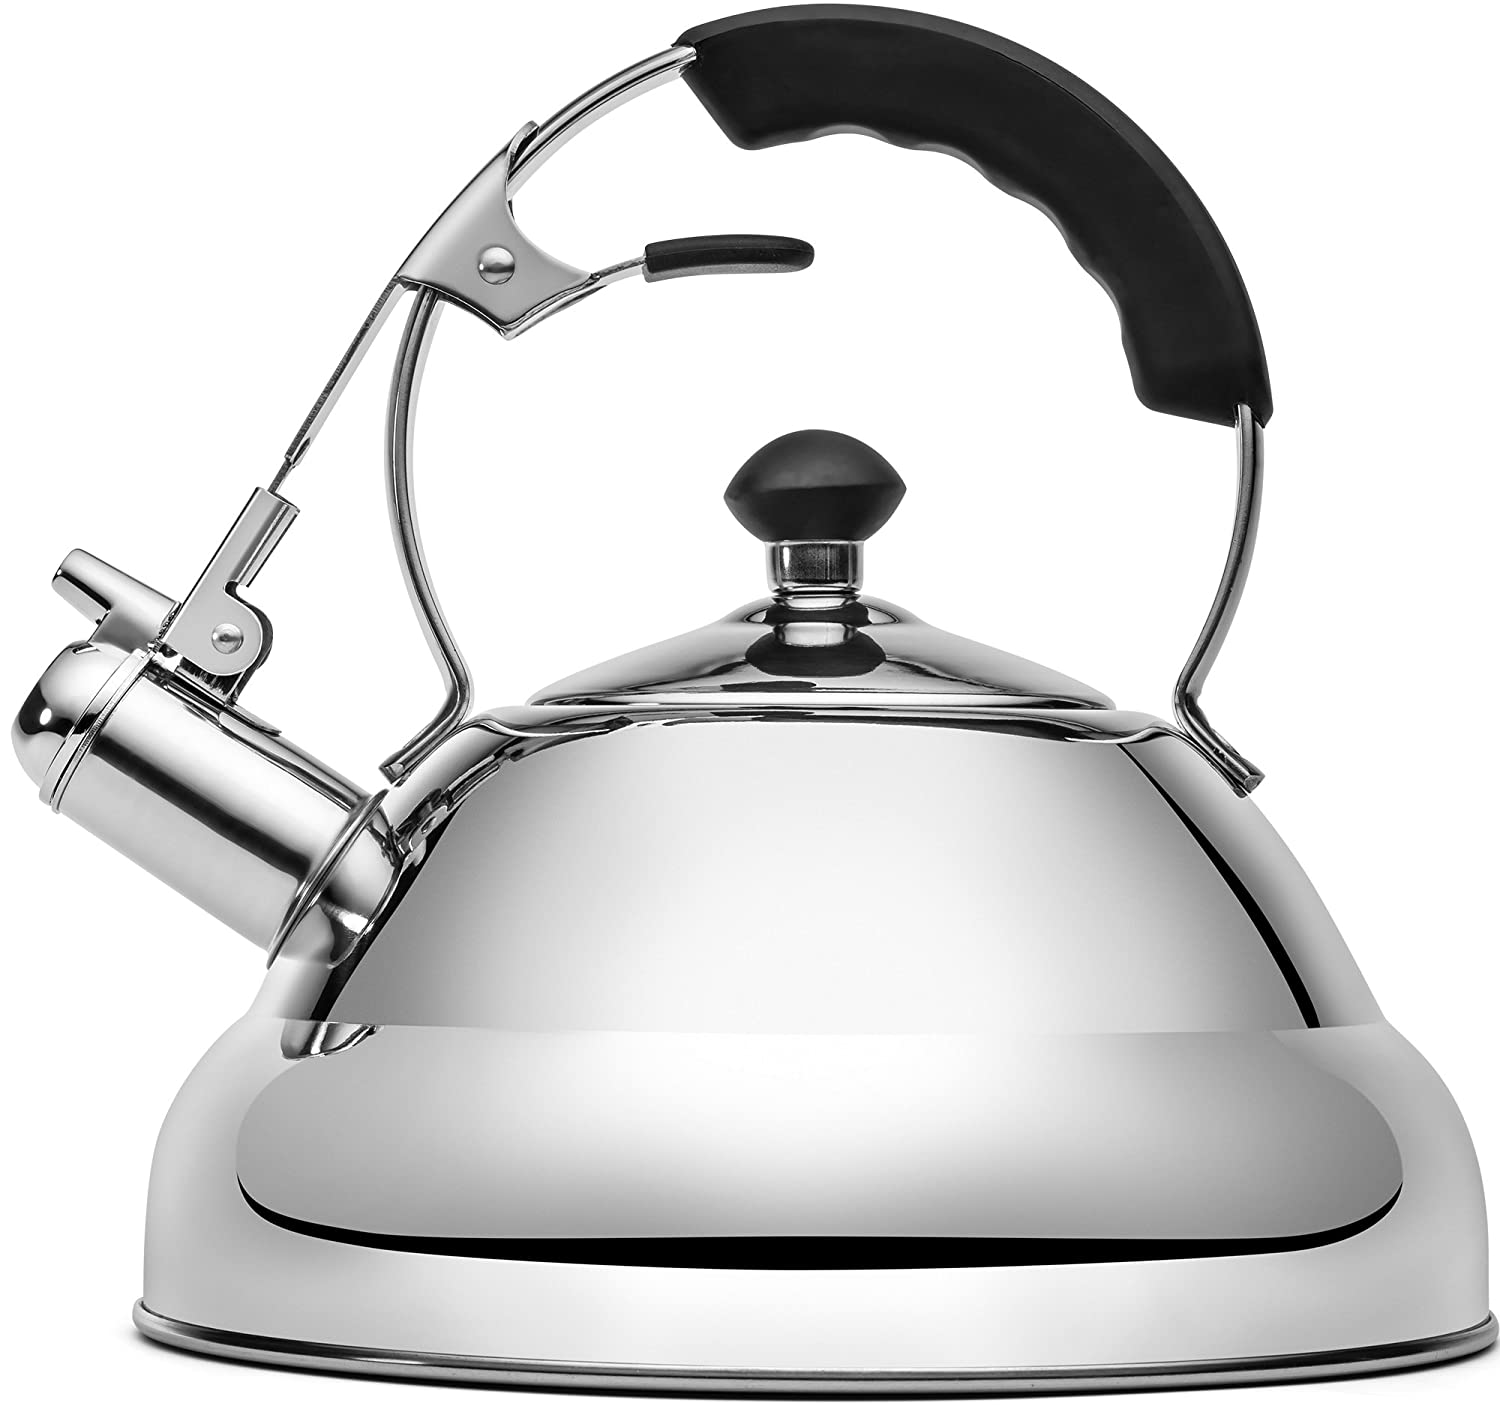 Vescoware Premium Whistling Tea Kettle